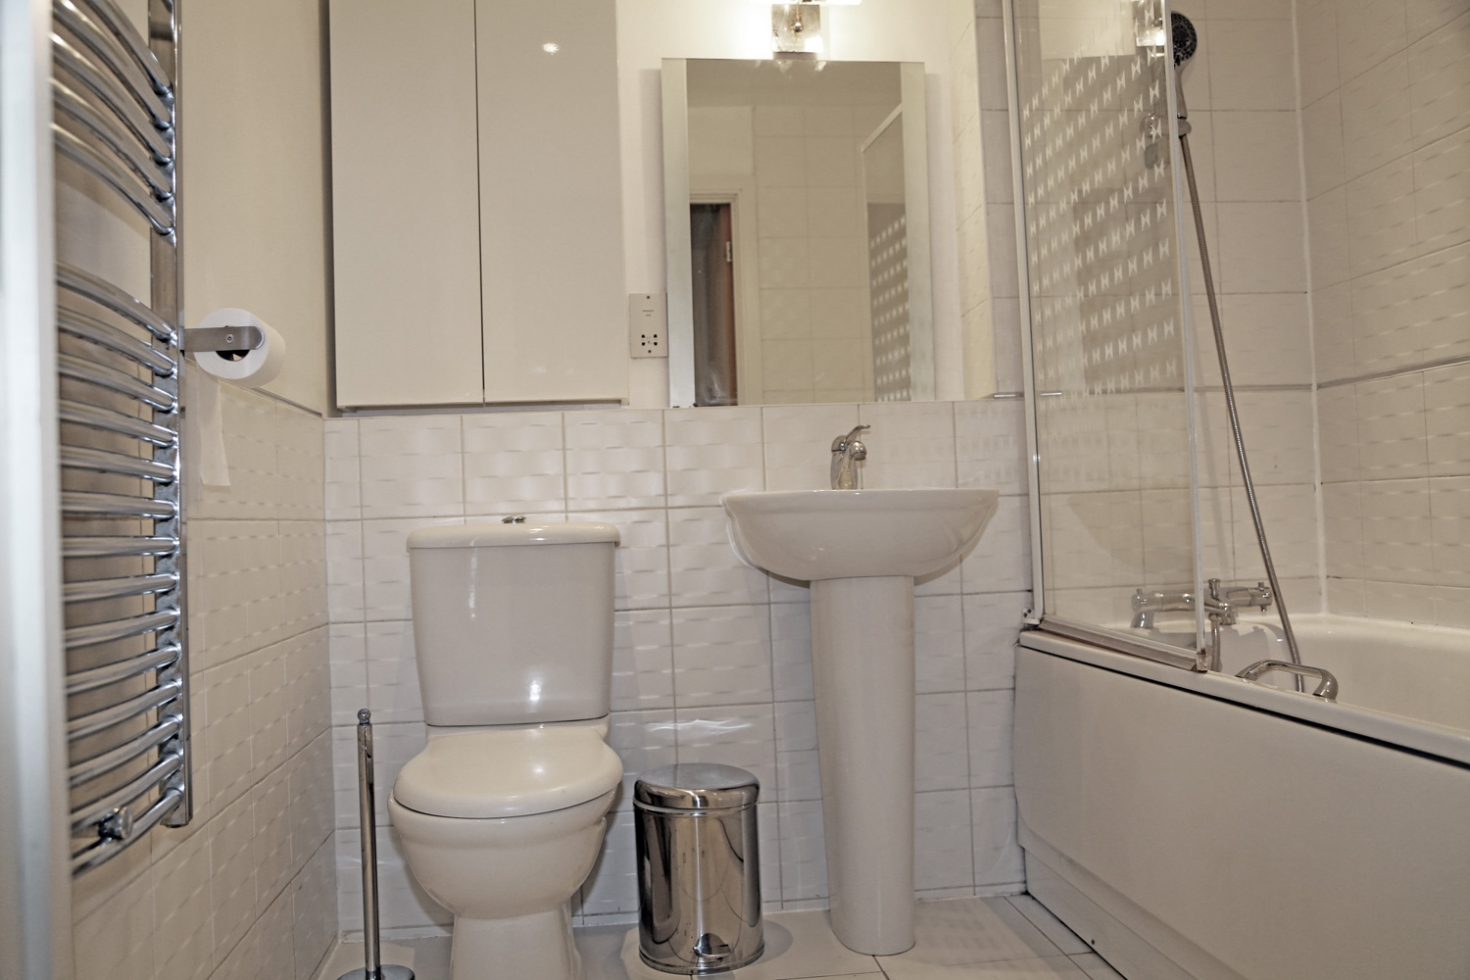 Flat To Rent In London Bathroom Flat To Rent In London